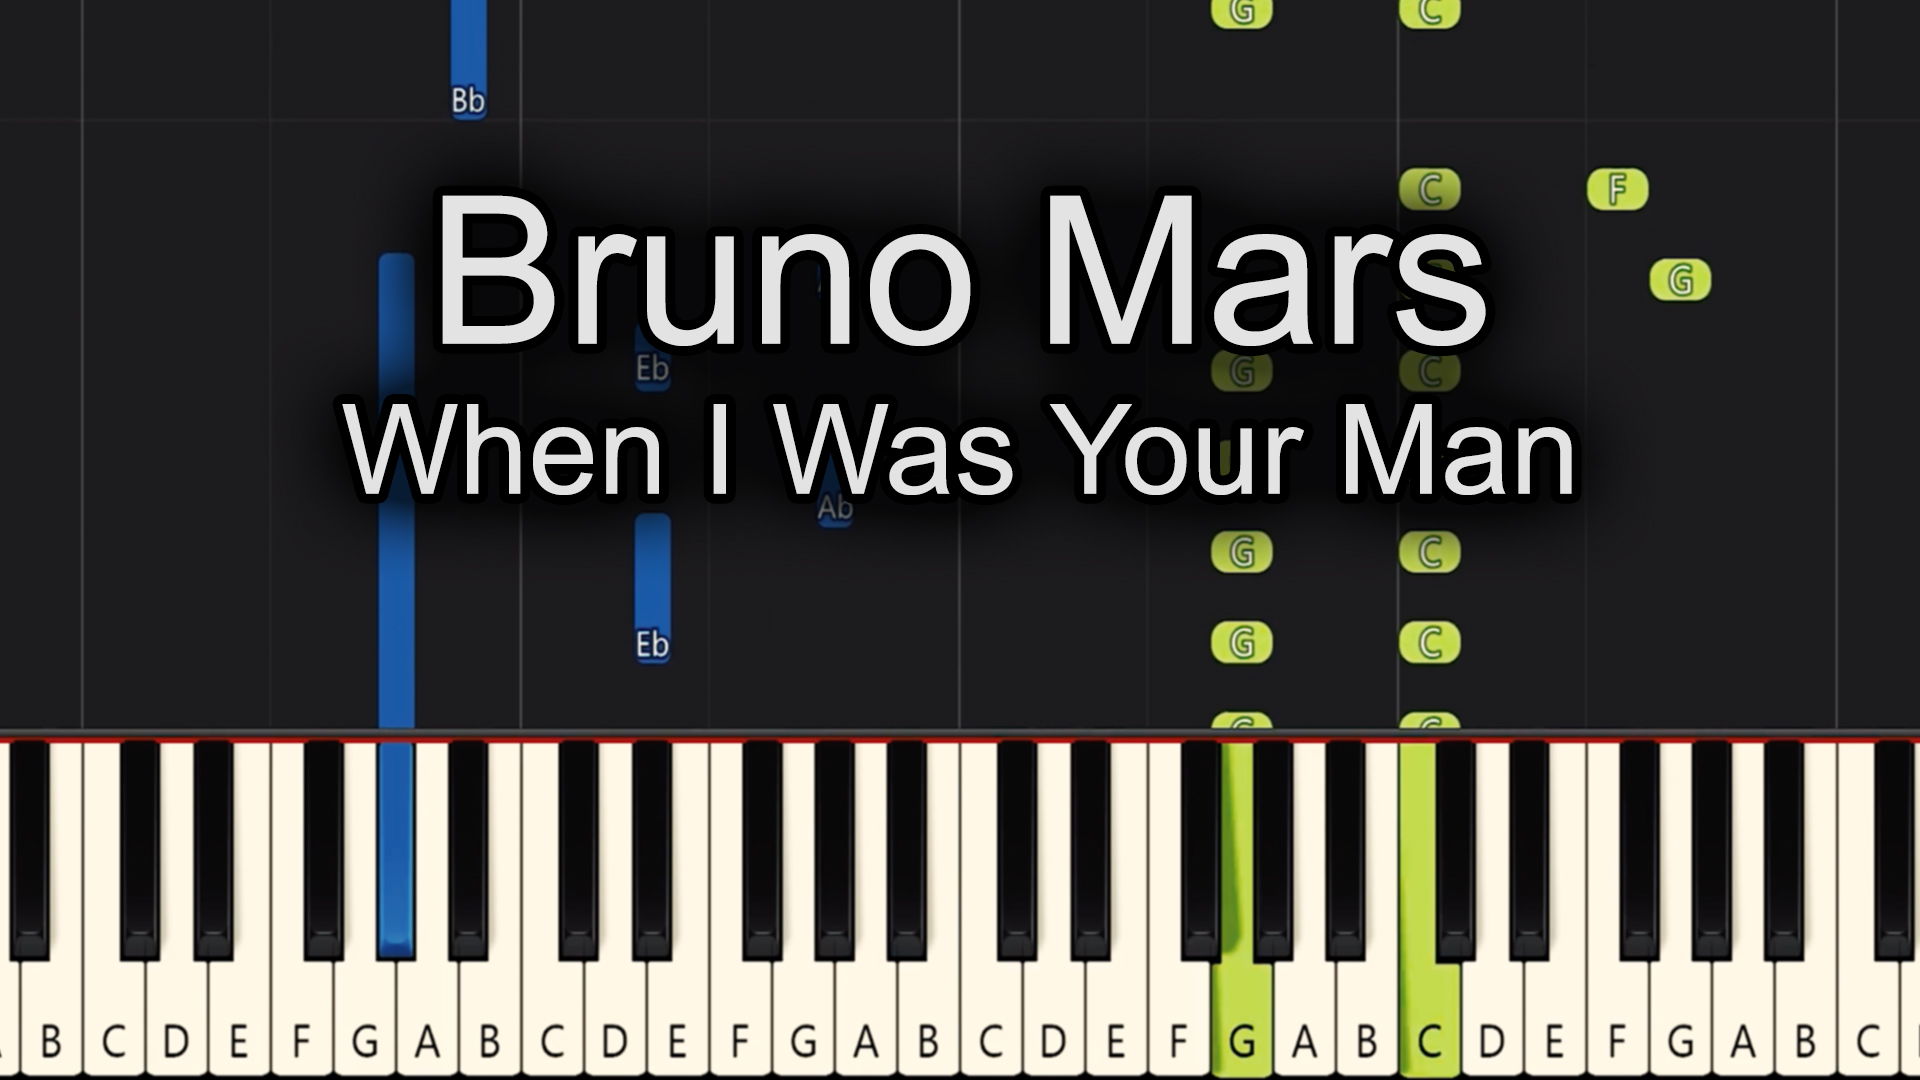 Bruno Mars – When I was Your Man – Advanced